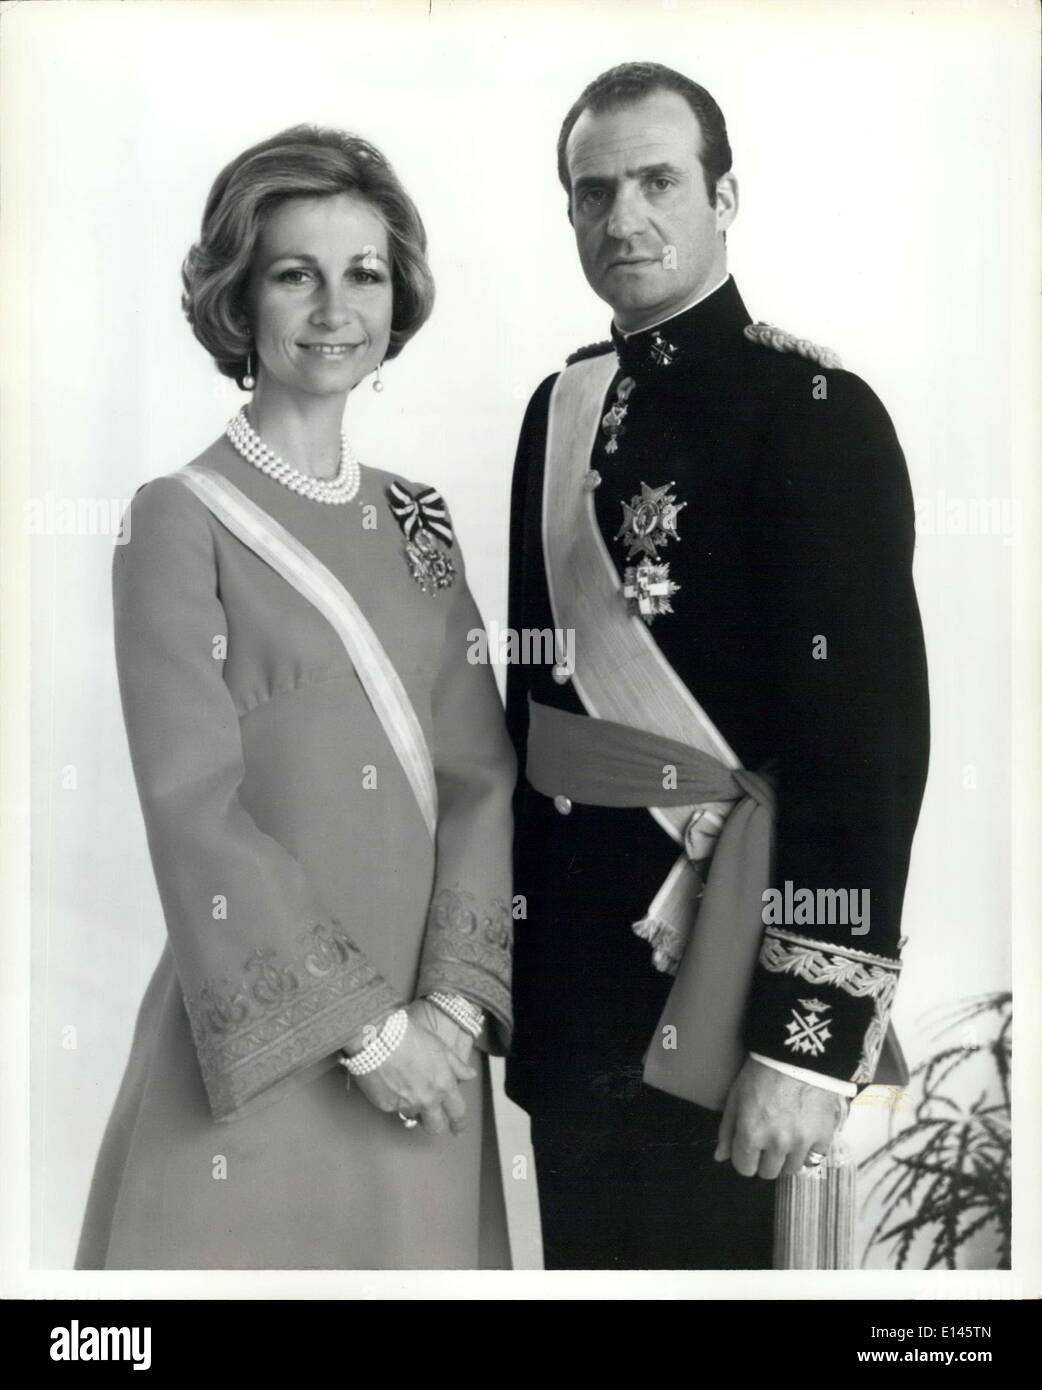 Apr. 05, 2012 - Spanish Monarchs to visit the U.S: King Juan Carlos I and Queen Sofia will be guests of President Ford during a - Stock Image